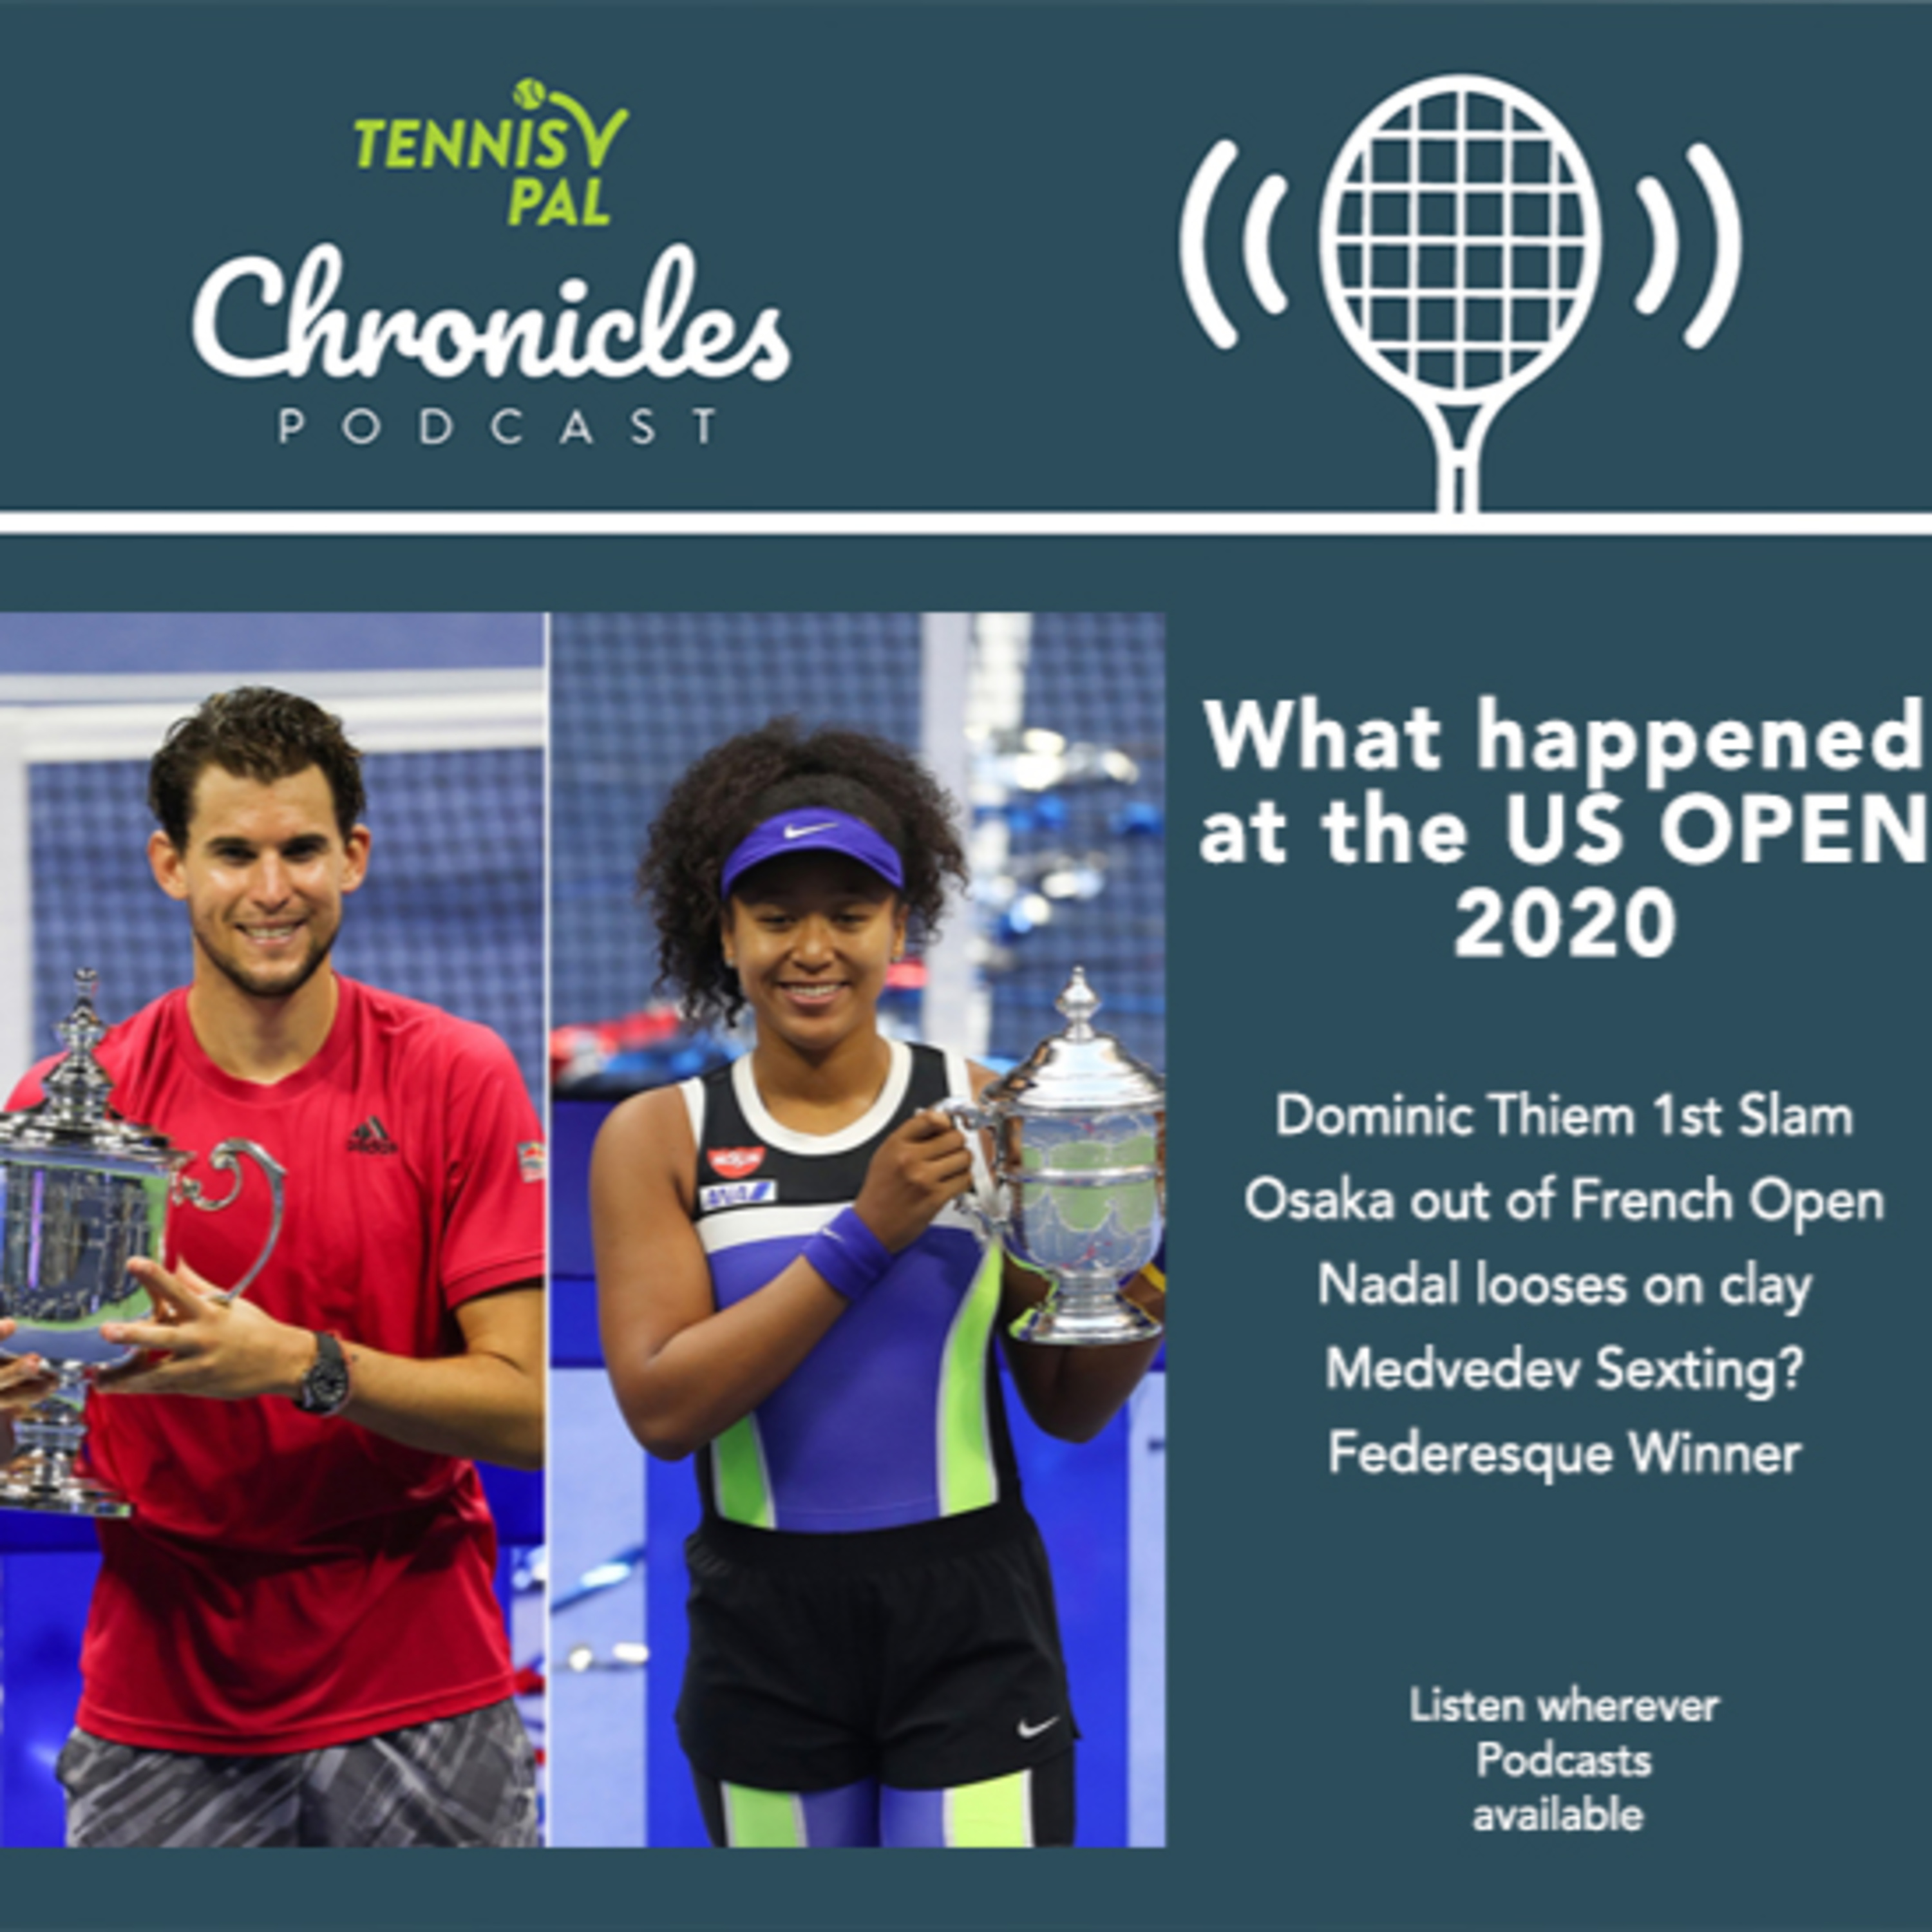 What happened at the US OPEN ?? Osaka is out of French Open Nadal looses on clay Medvedev sexting rumor Federesque Winner